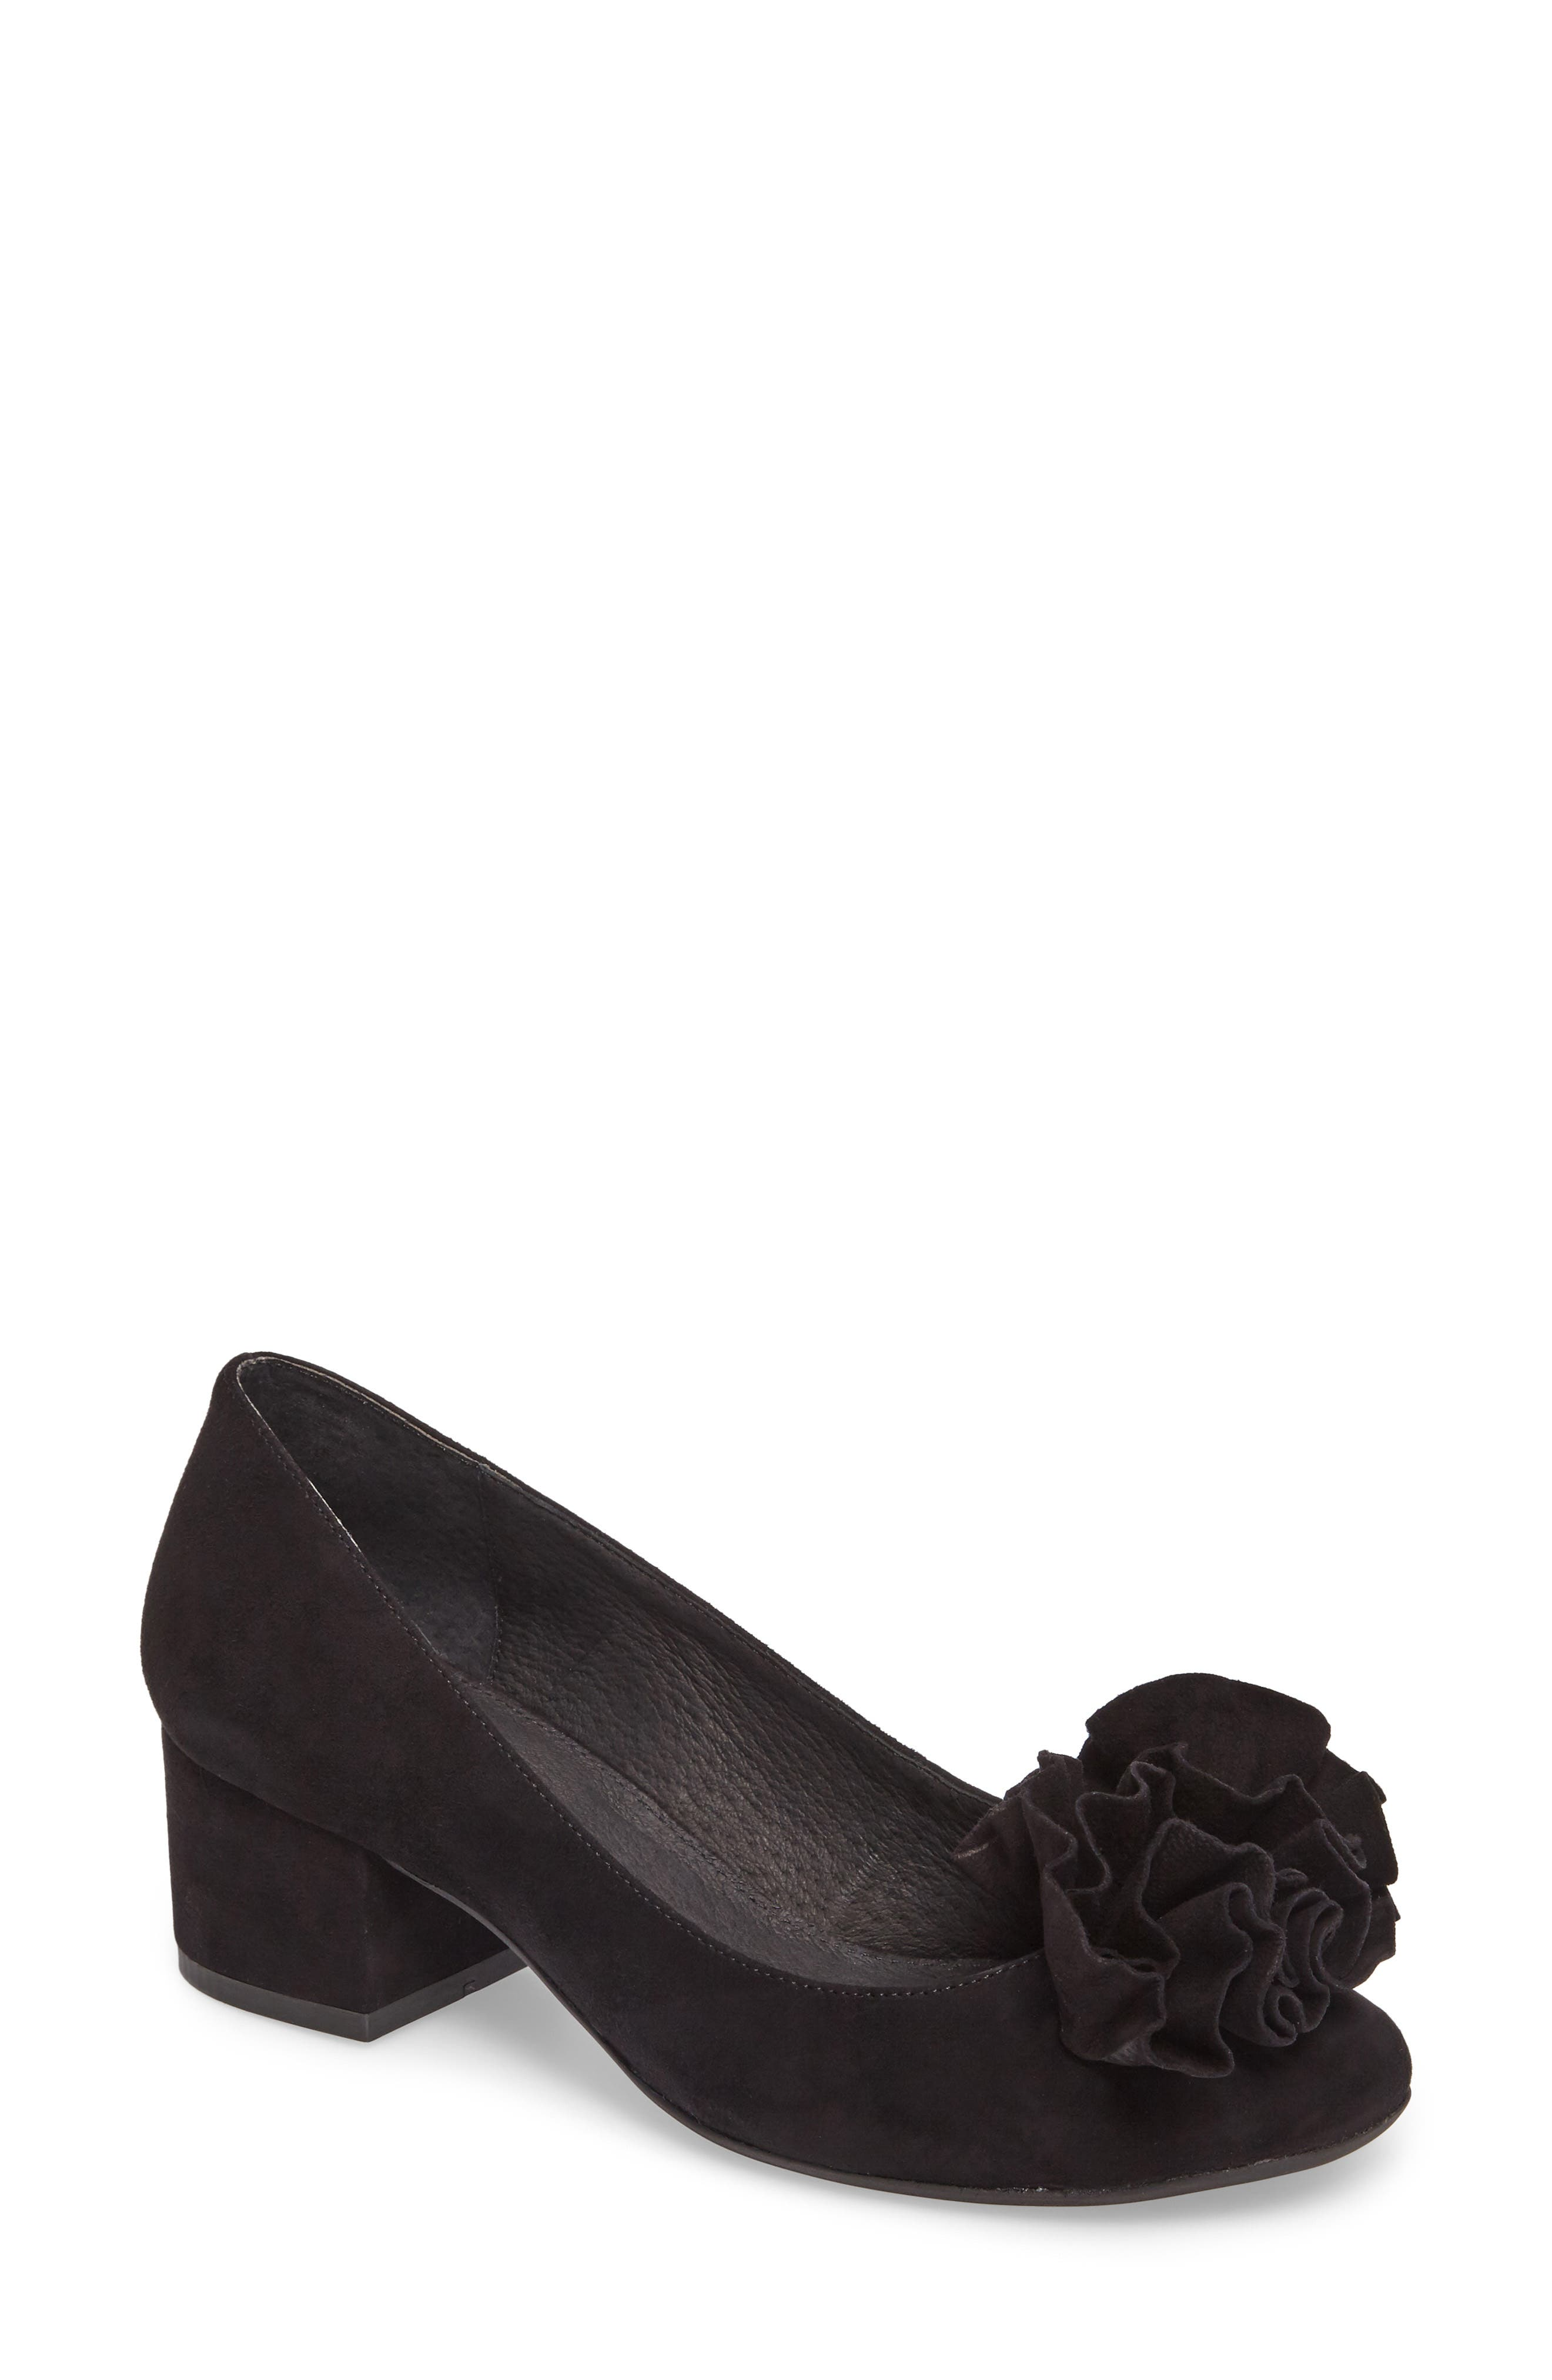 Lilly Pump,                             Main thumbnail 1, color,                             Black Suede